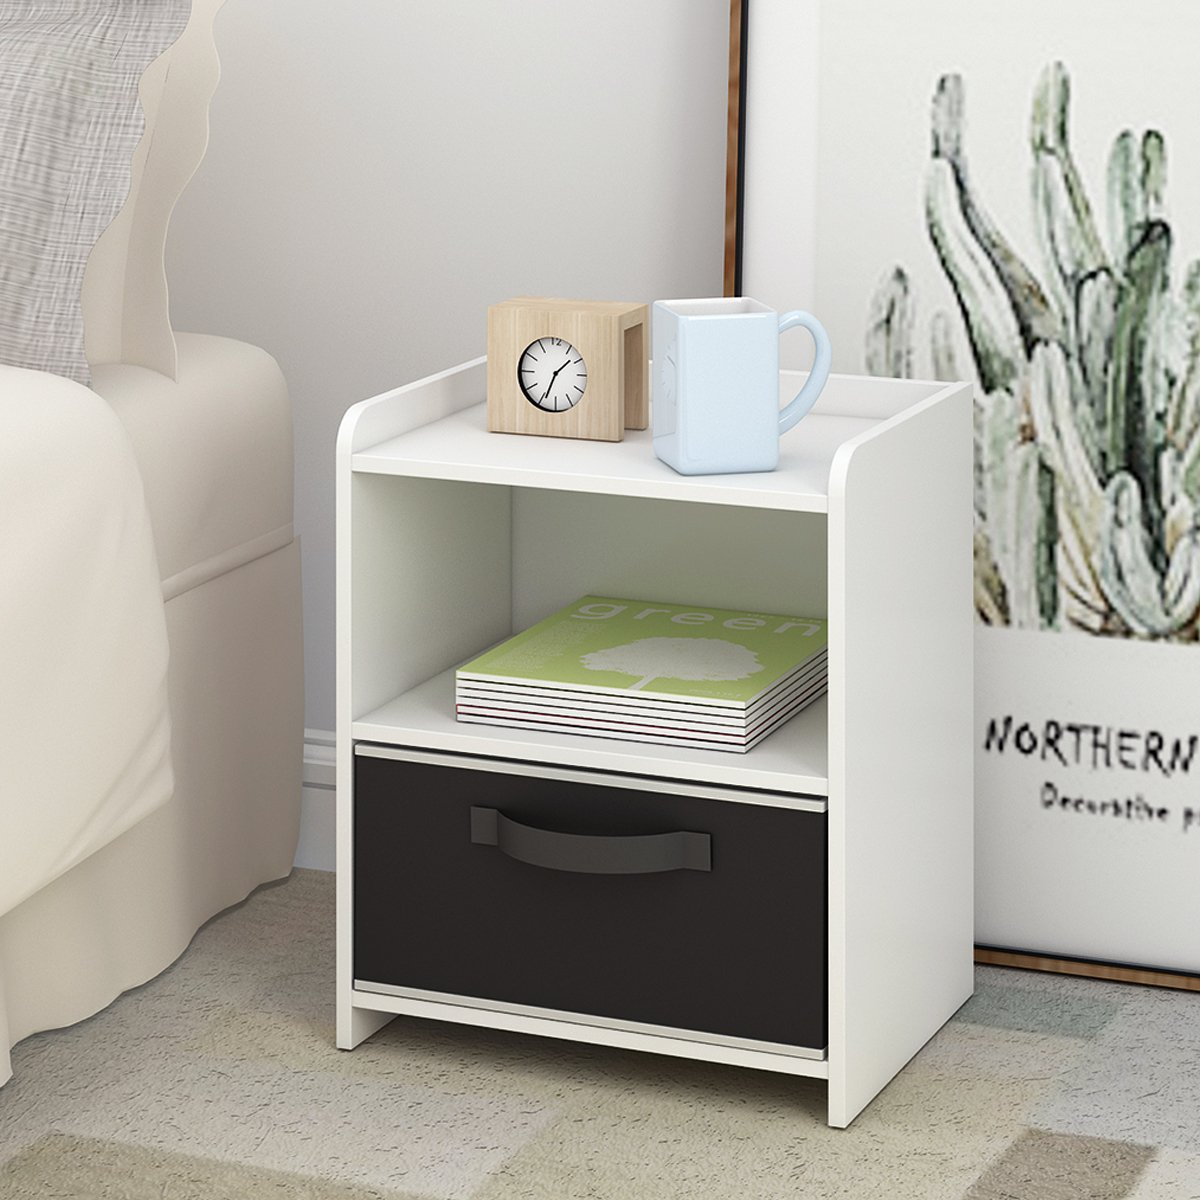 DEVAISE Wood End Table/Night Stand/Bedside Table Storage Shelf with Bin Drawer, White